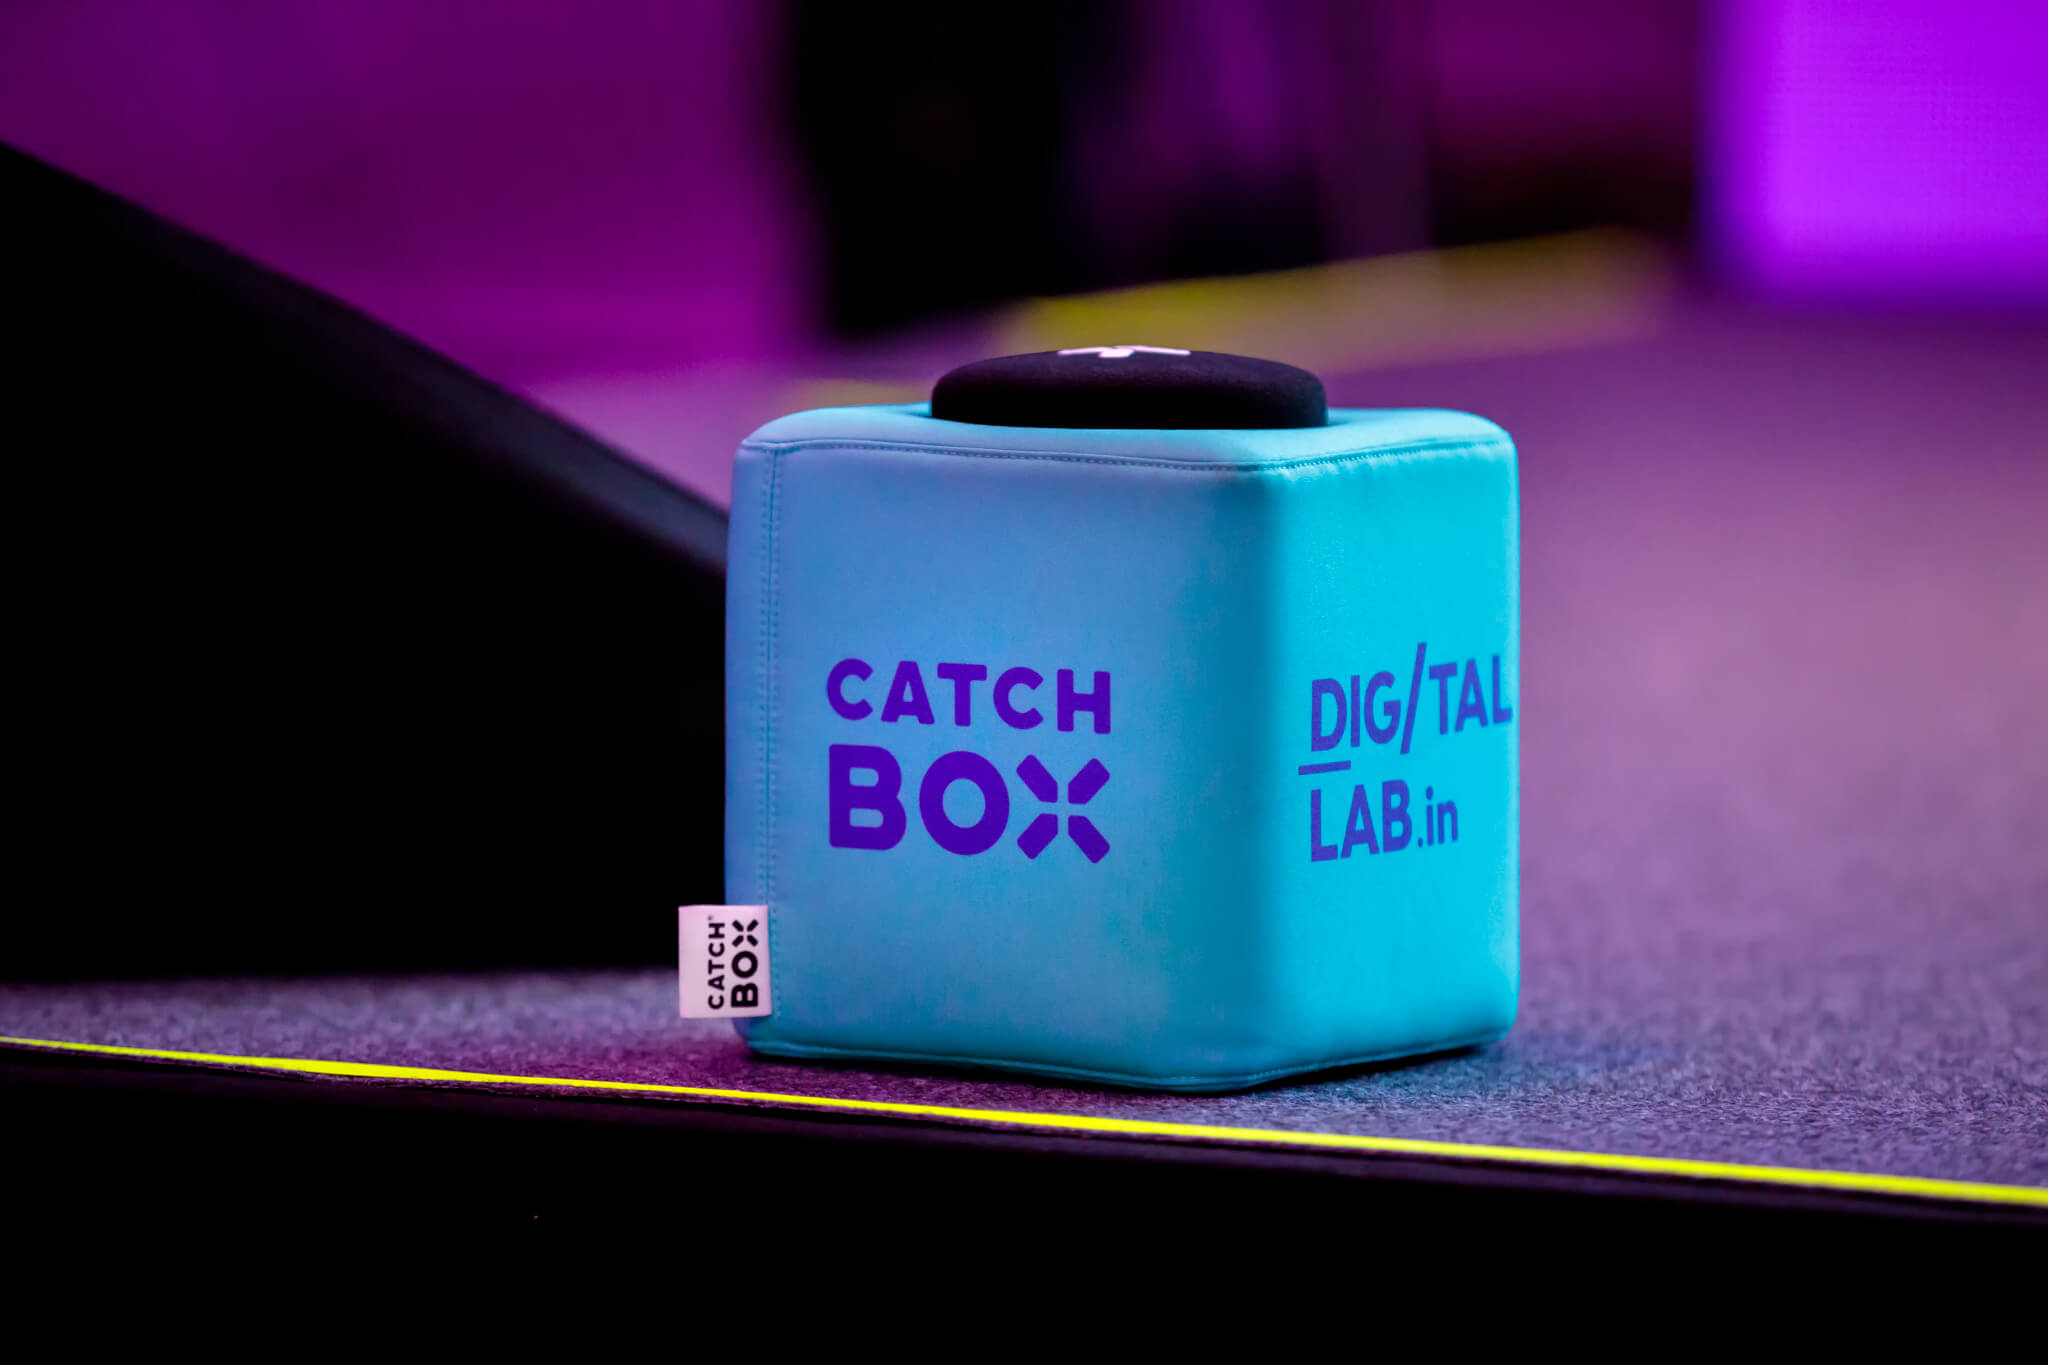 Catchbox at Digital lab event